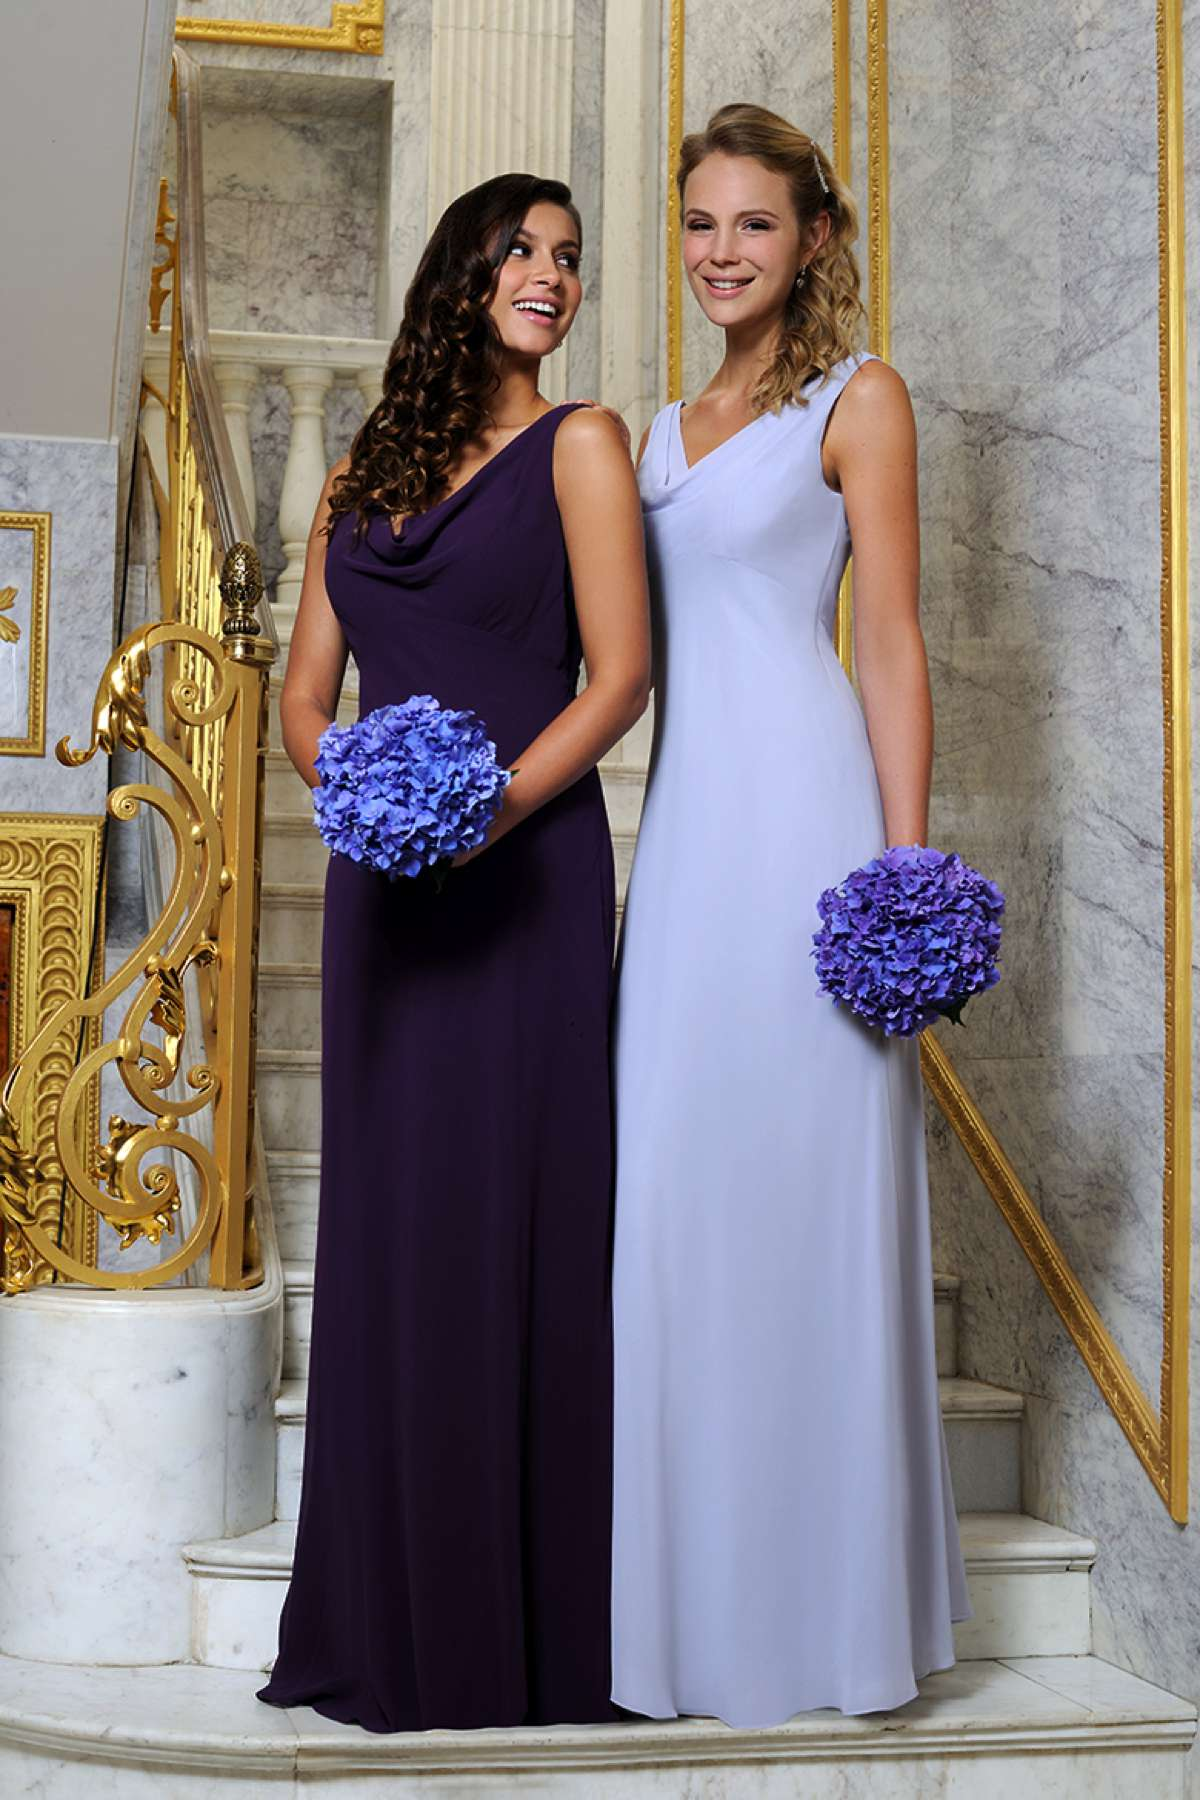 Stunning bridesmaid dresses at Veromia - Love Our Wedding